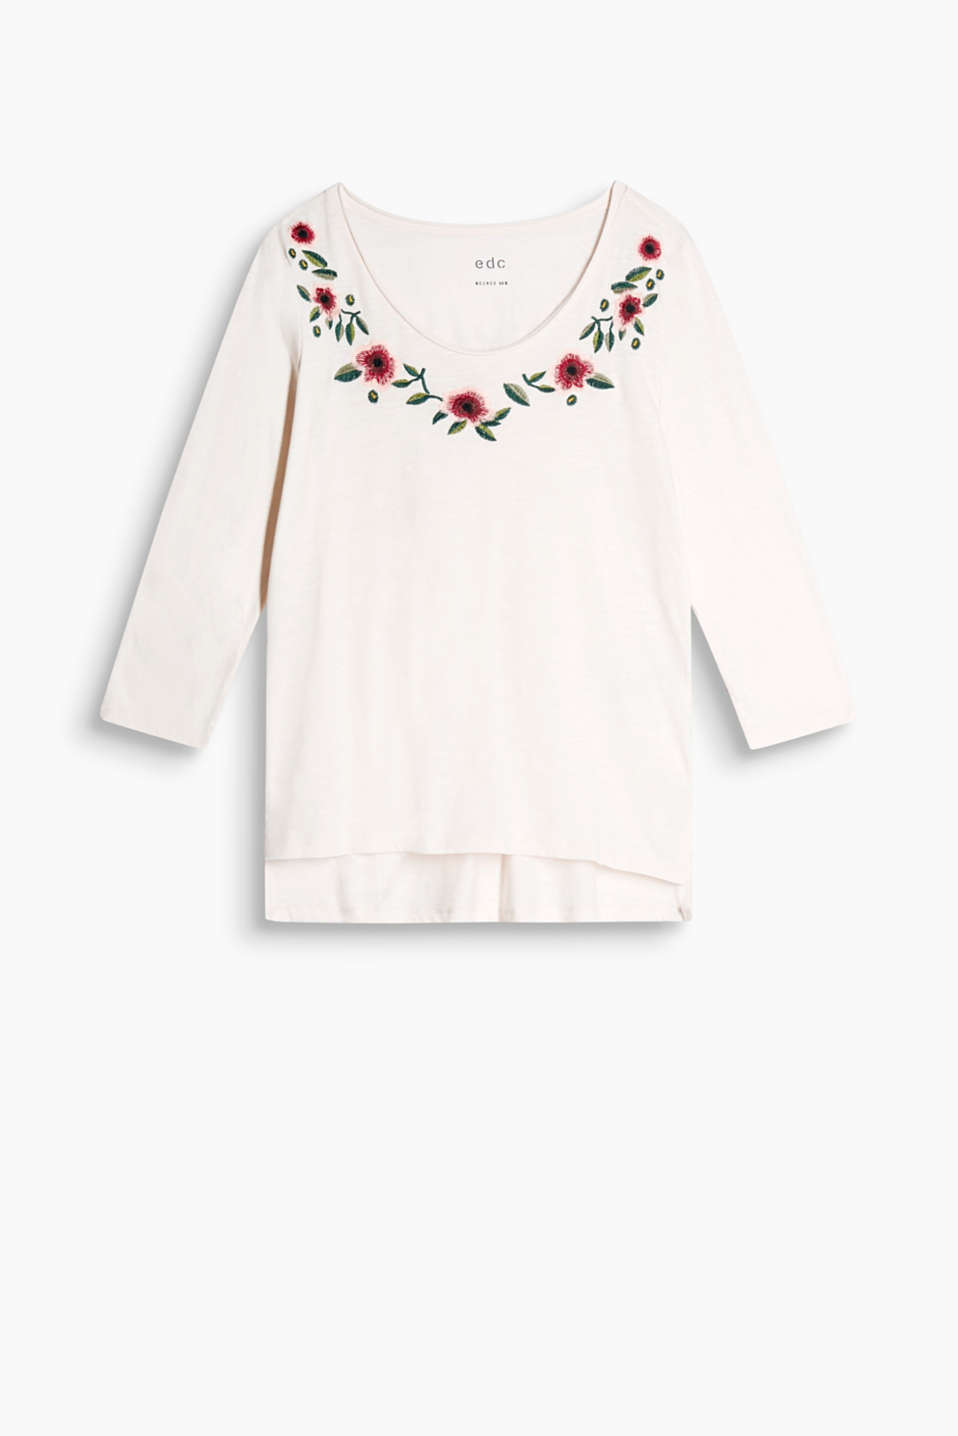 Long sleeve top in 100% cotton with bold floral embroidery along the beautiful round neckline